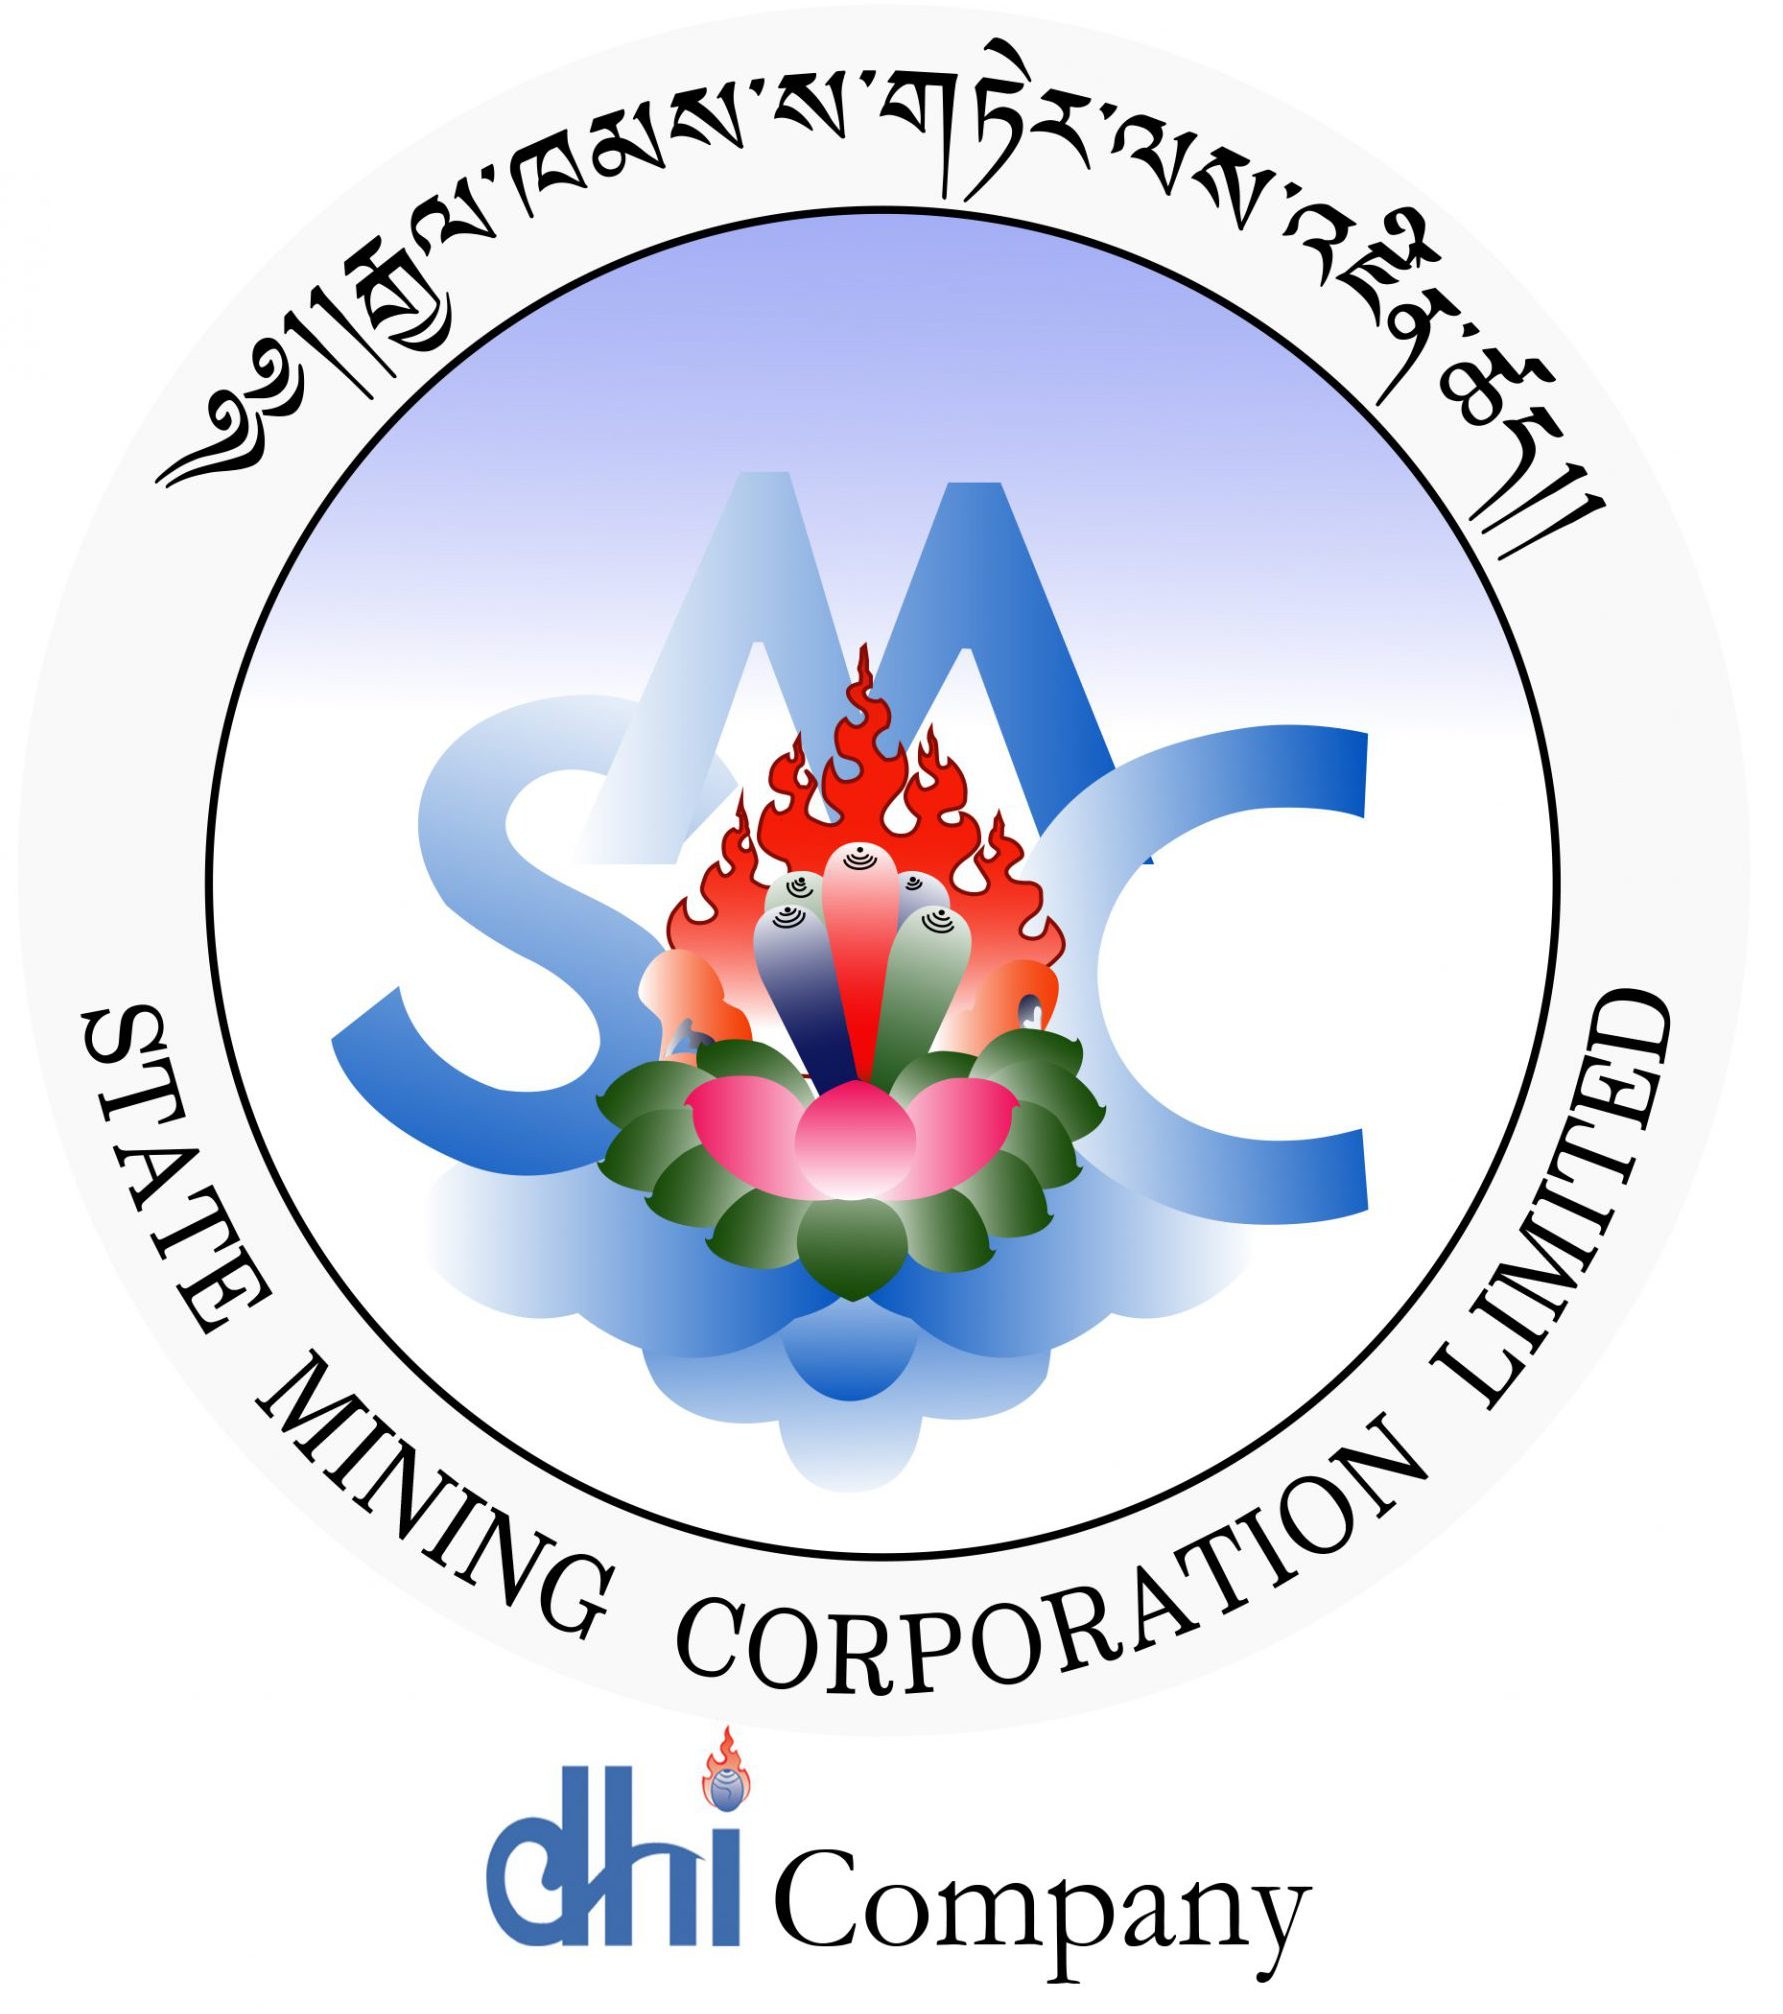 State Mining Corporation Limited